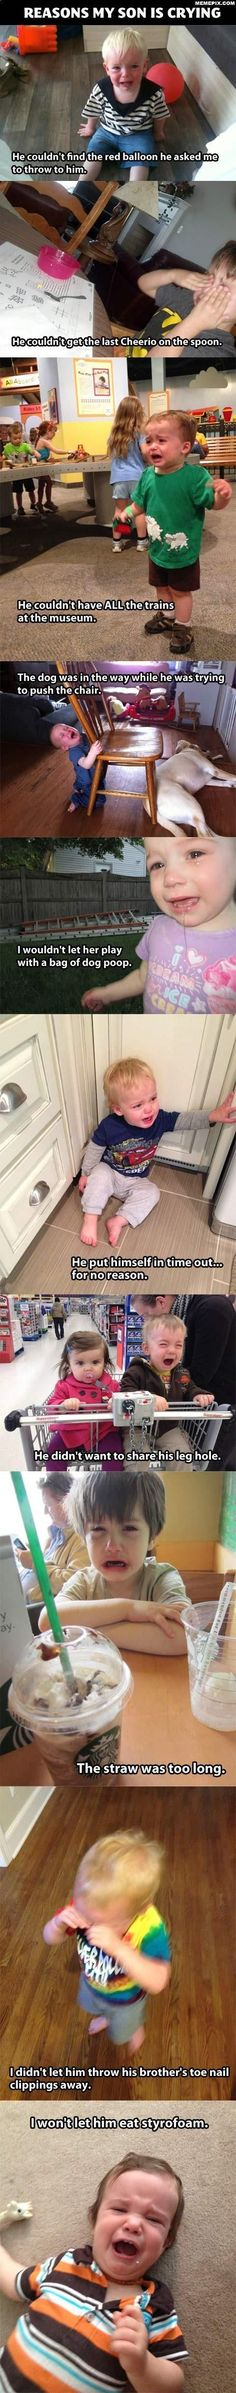 Reasons my son is crying...